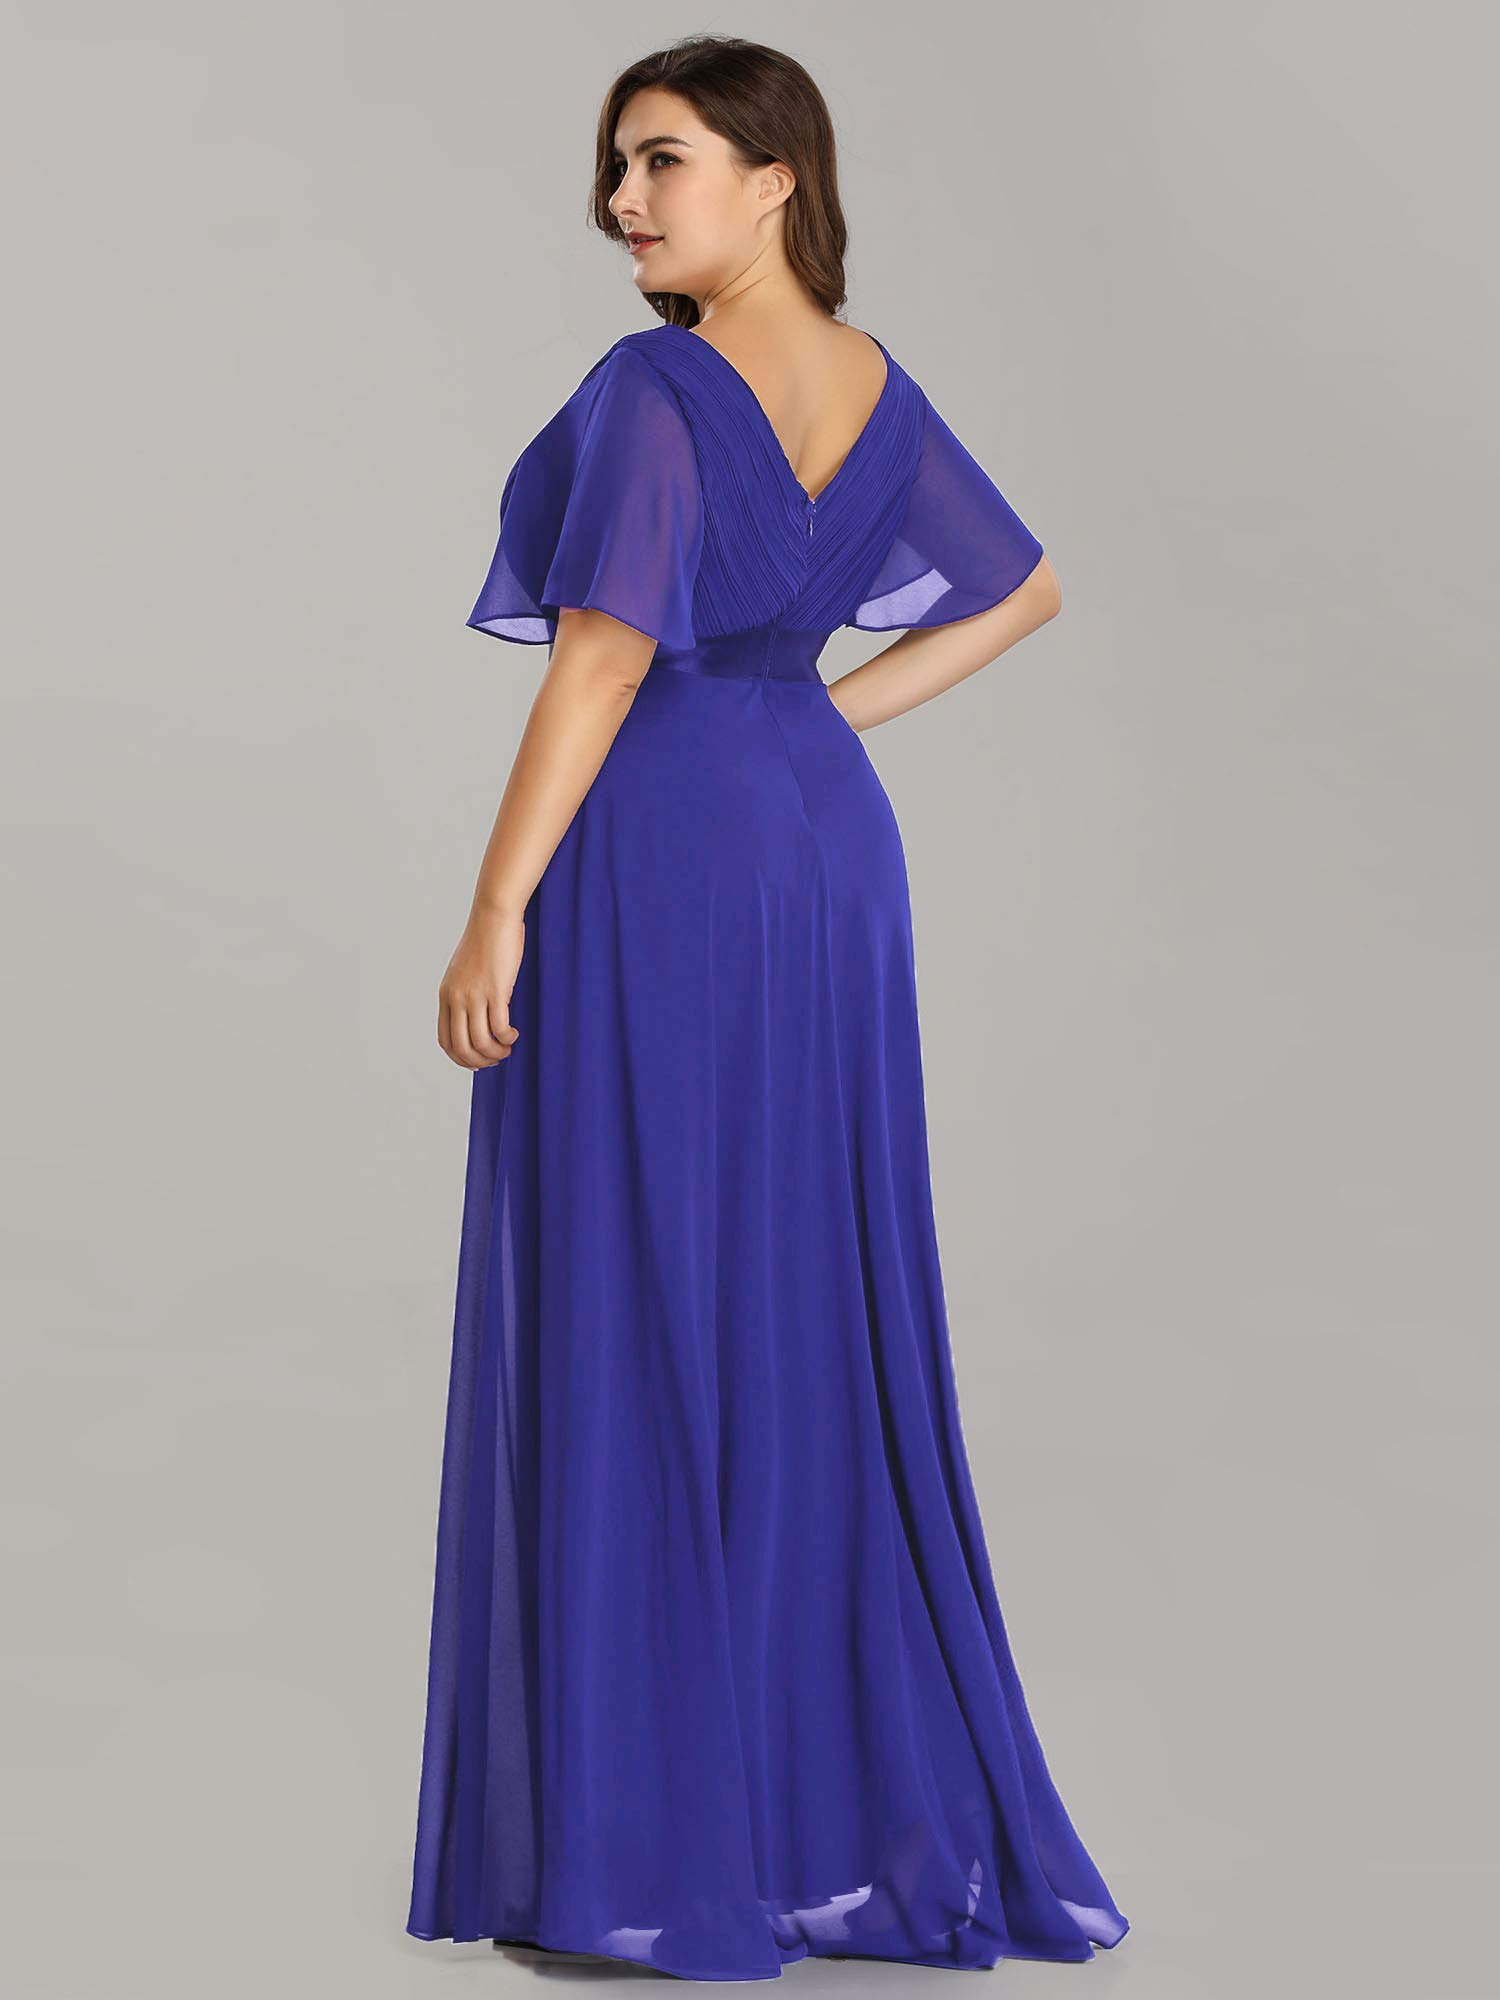 Ever-Pretty V-Neck Ruffle Sleeves Vintage Wedding Maxi Dress Plus Size  Royal Blue US24